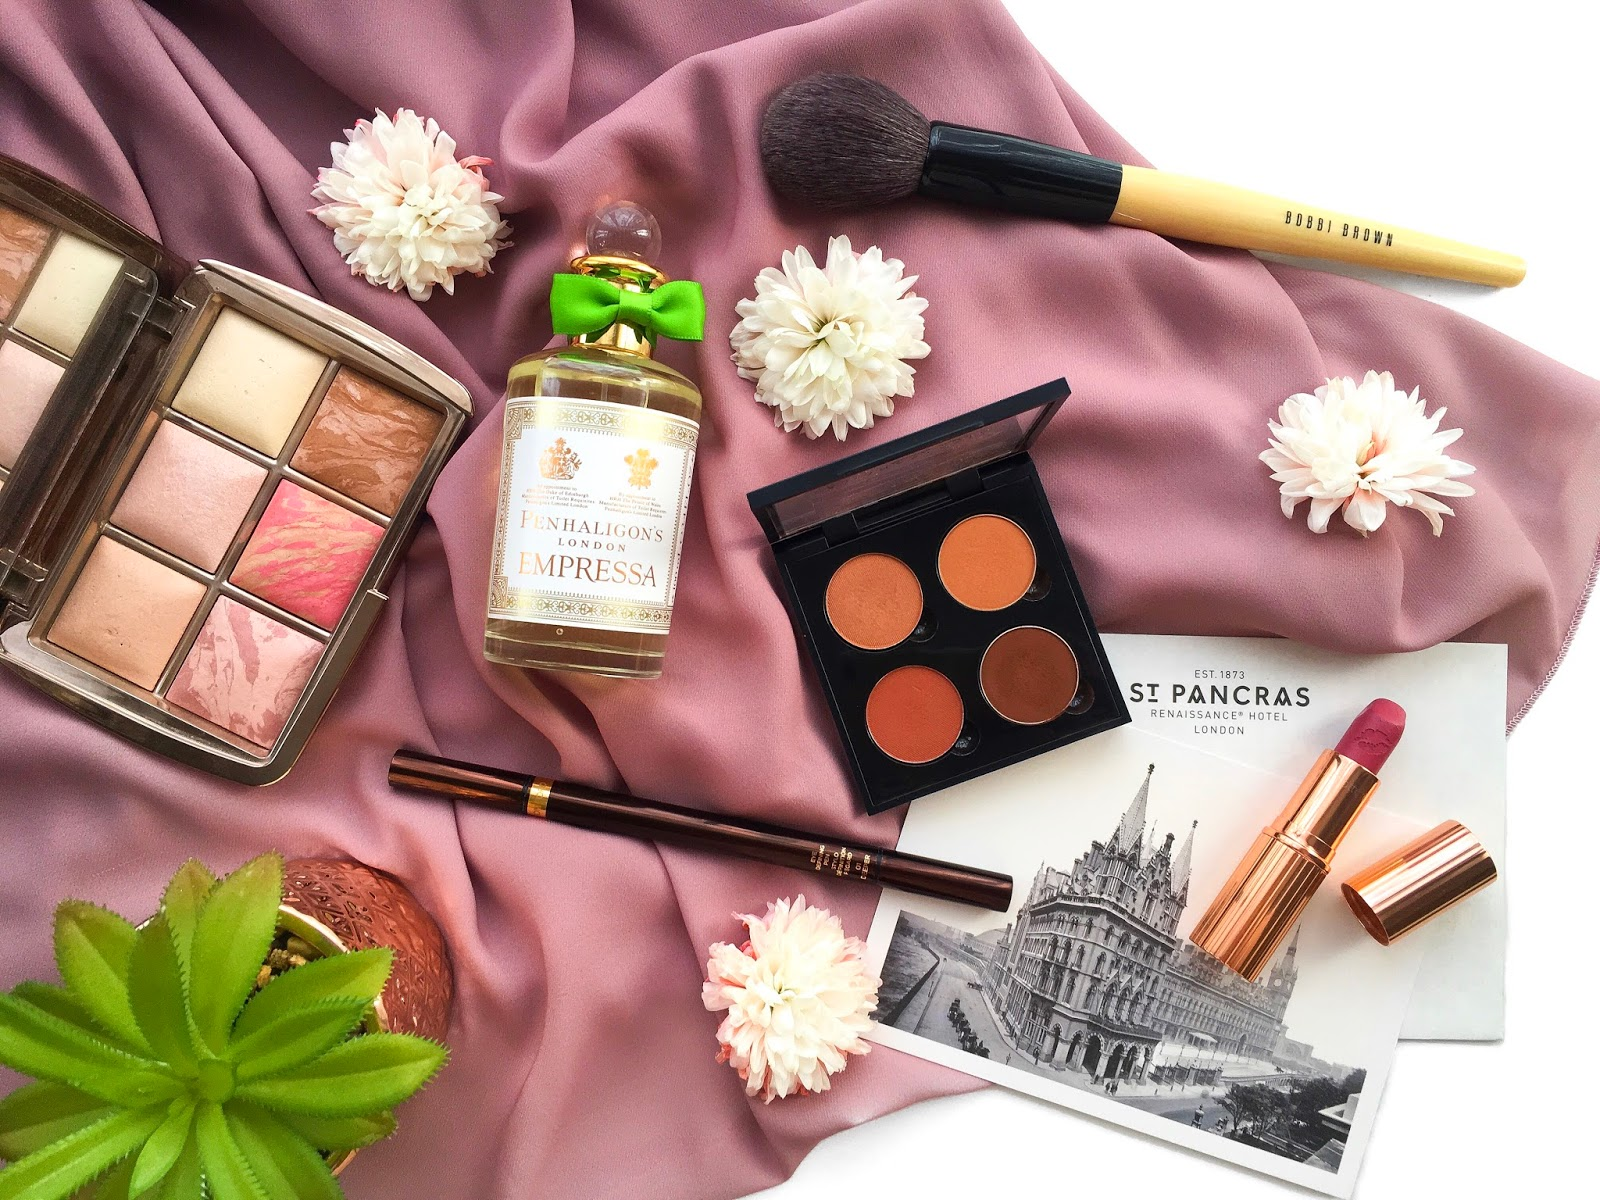 penhaligons empressa review, hourglass ambient lighting edit volume 1, charlotte tilbury secret salma review, anastasia beverly hills custom quad, bobbi brown powder brush, tom ford eye defining pen